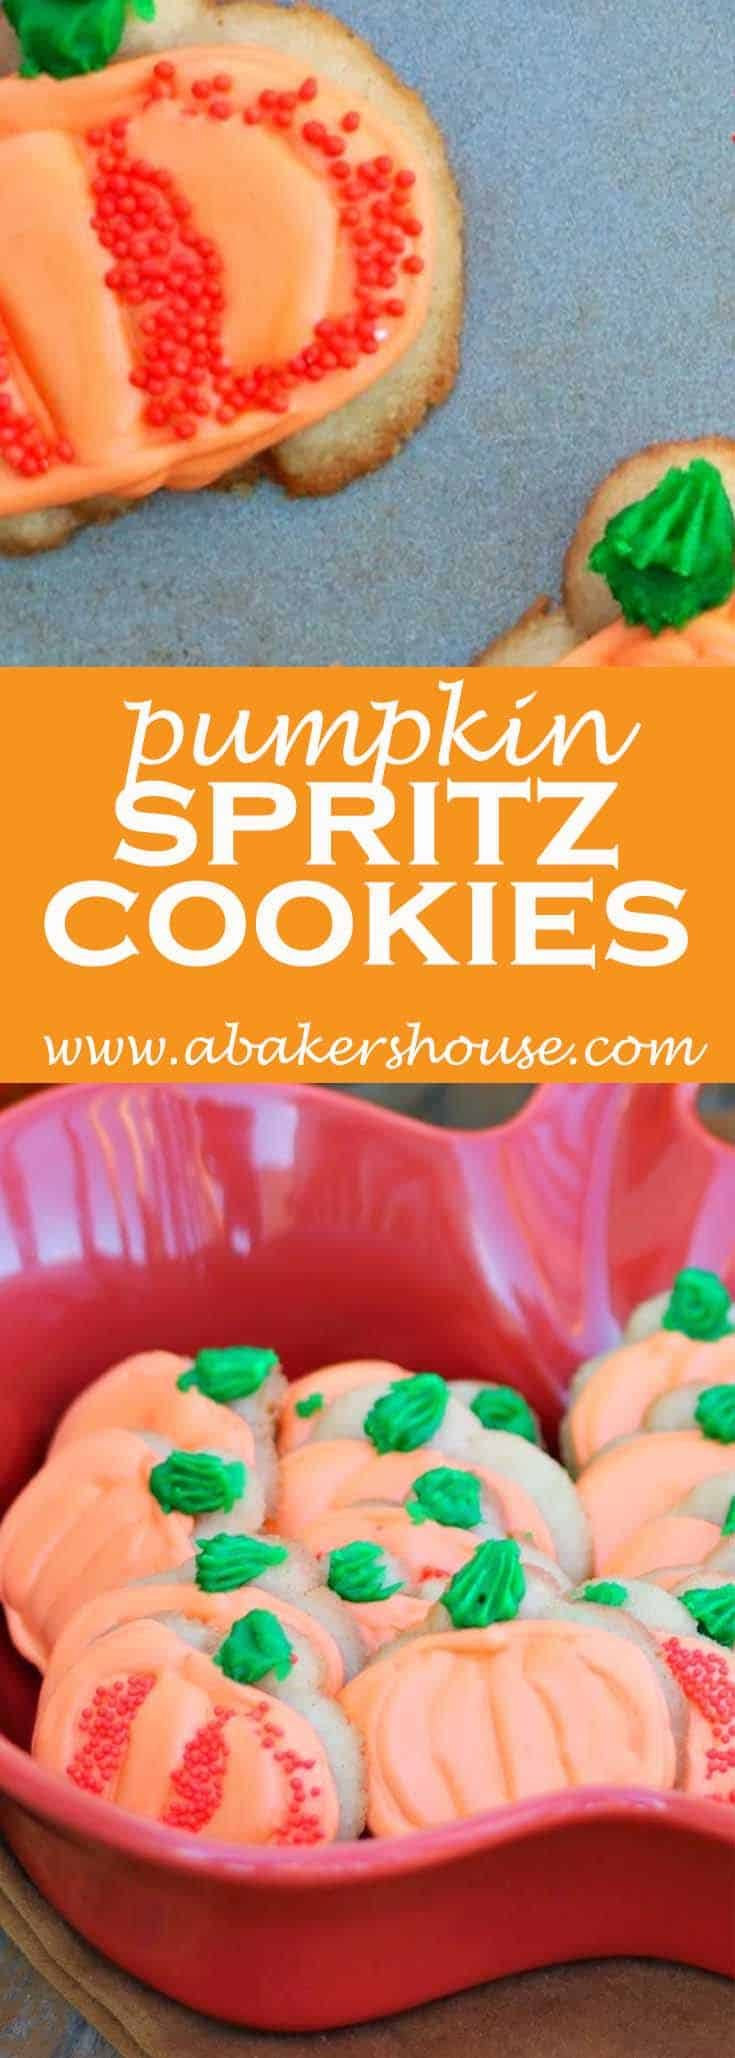 Use your Spritz cookie press to make these Halloween pumpkin cookies decorated with royal icing. #abakershouse #pumpkin #pumpkincookies #halloween #thanksgiving #spritzcookies #cookiepress